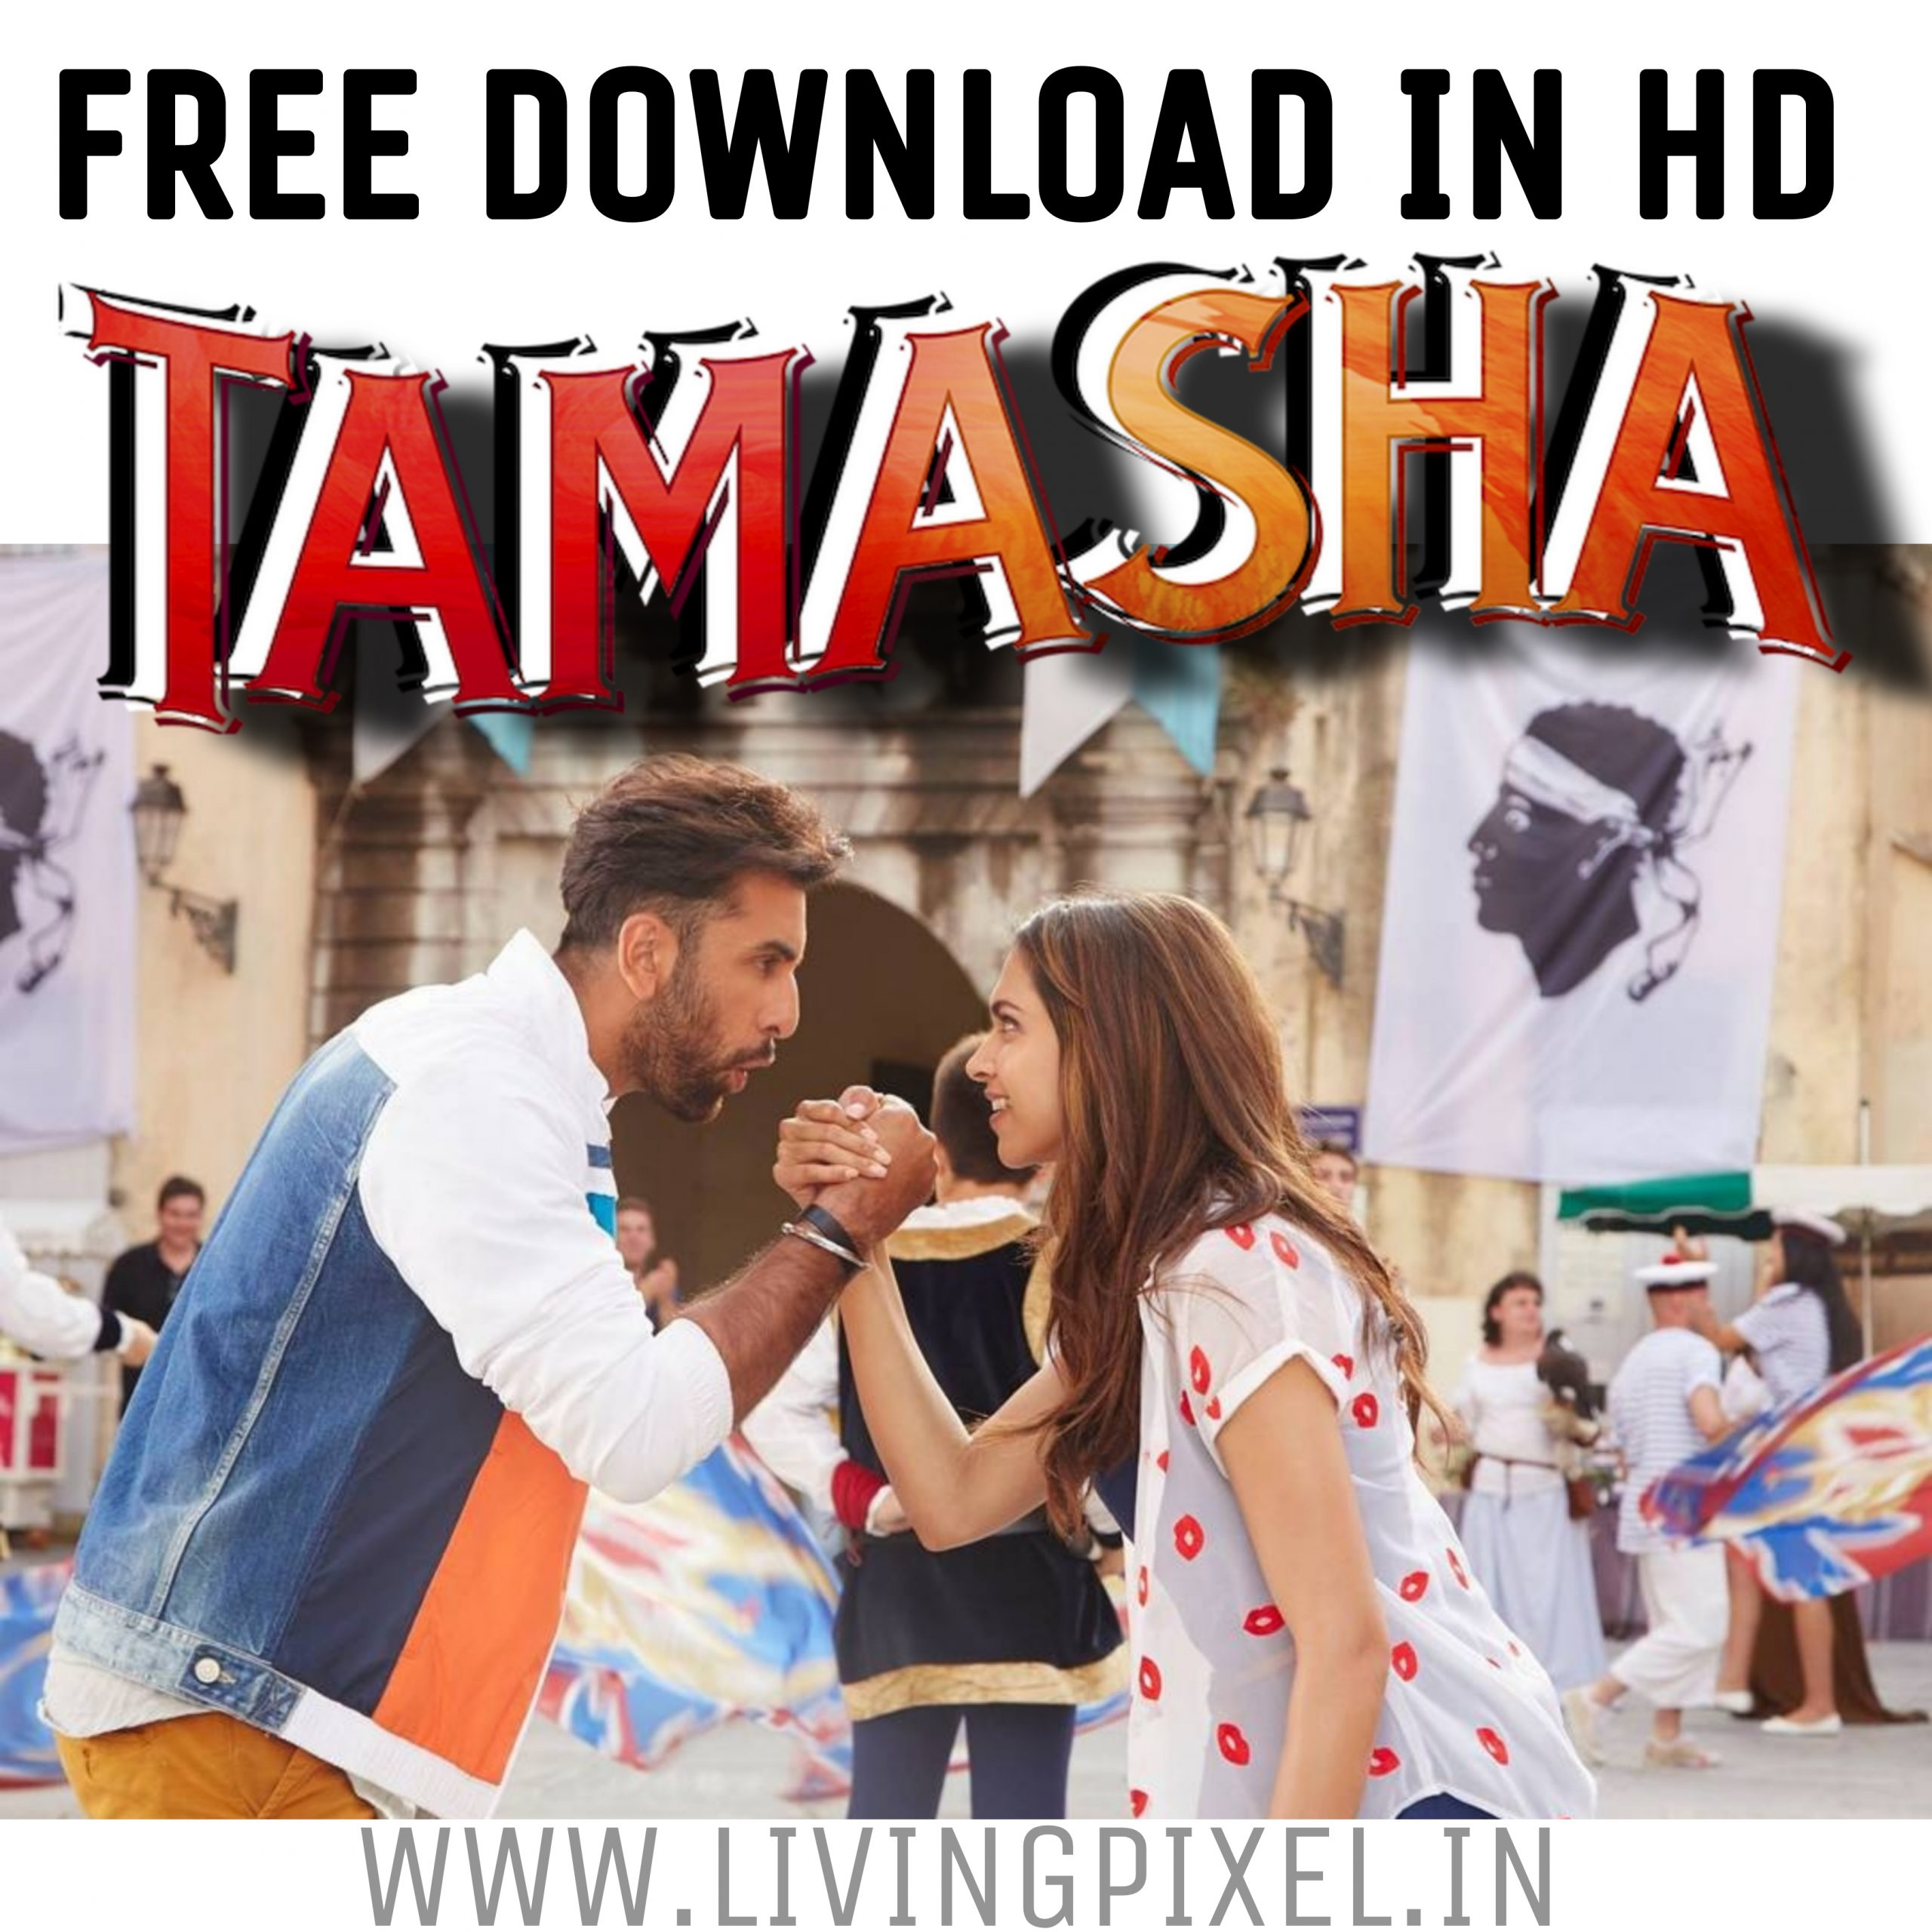 Tamasha full movie download Pagalworld in HD